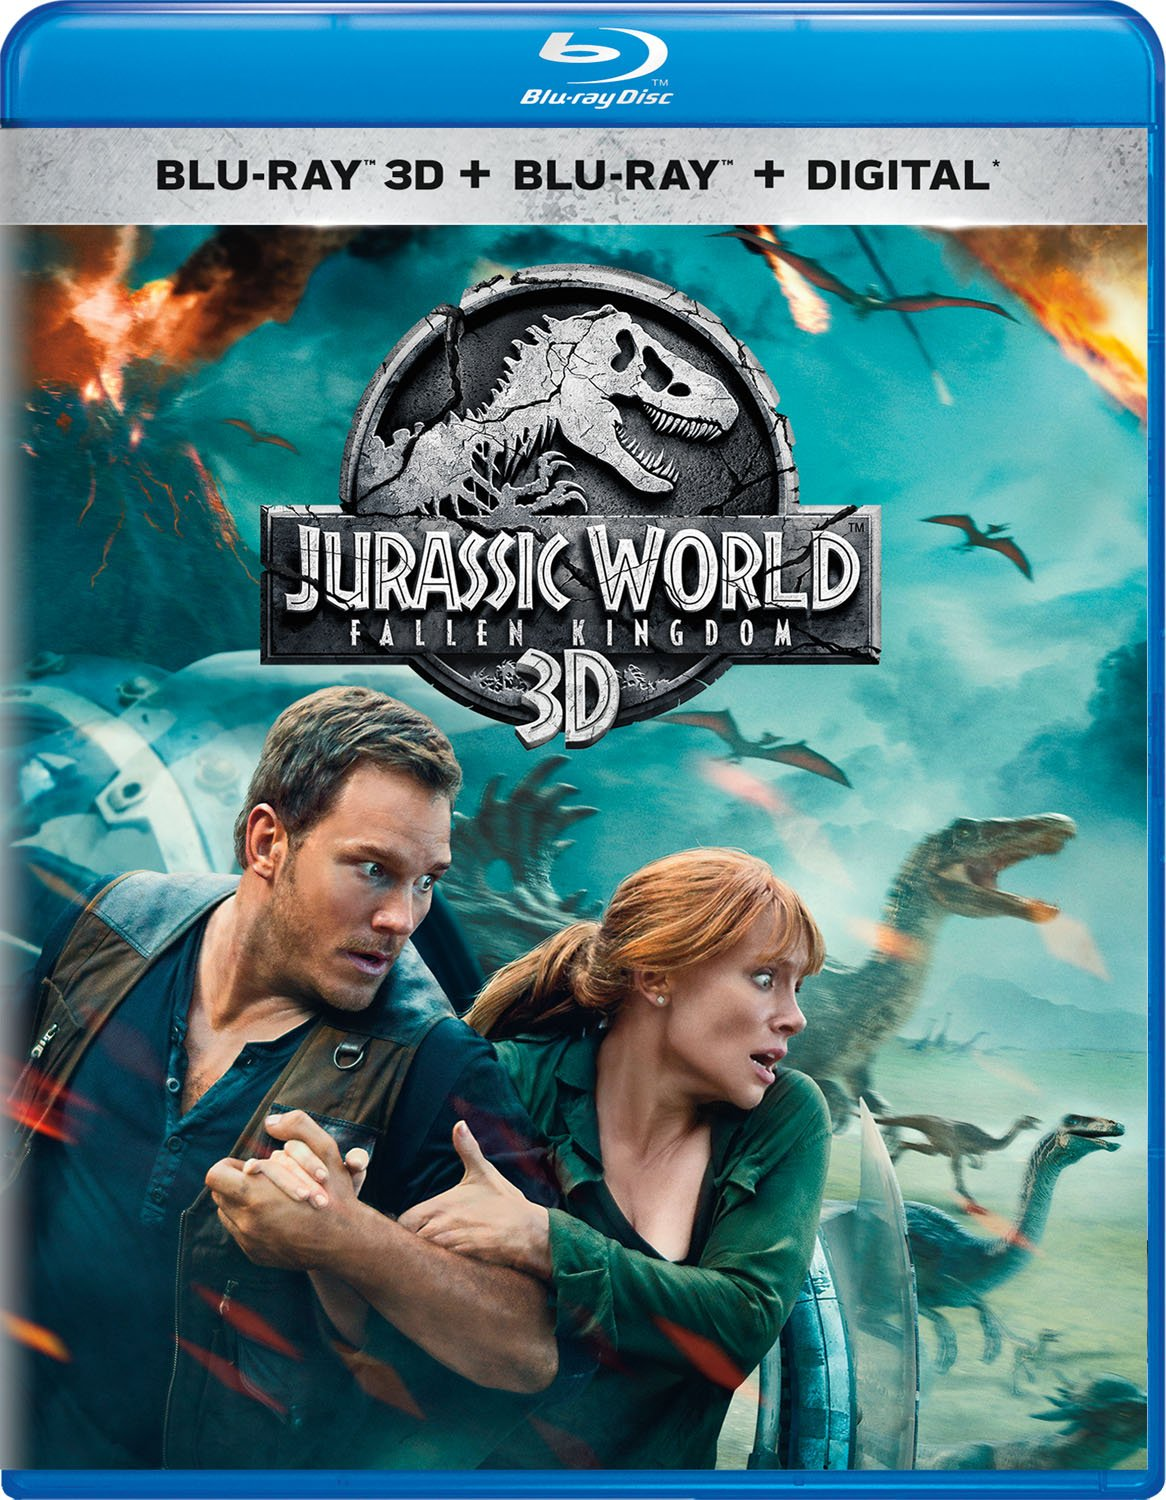 Blu-ray 3D : Jurassic World: Fallen Kingdom (With Blu-ray, 2 Pack, 3 Dimensional)